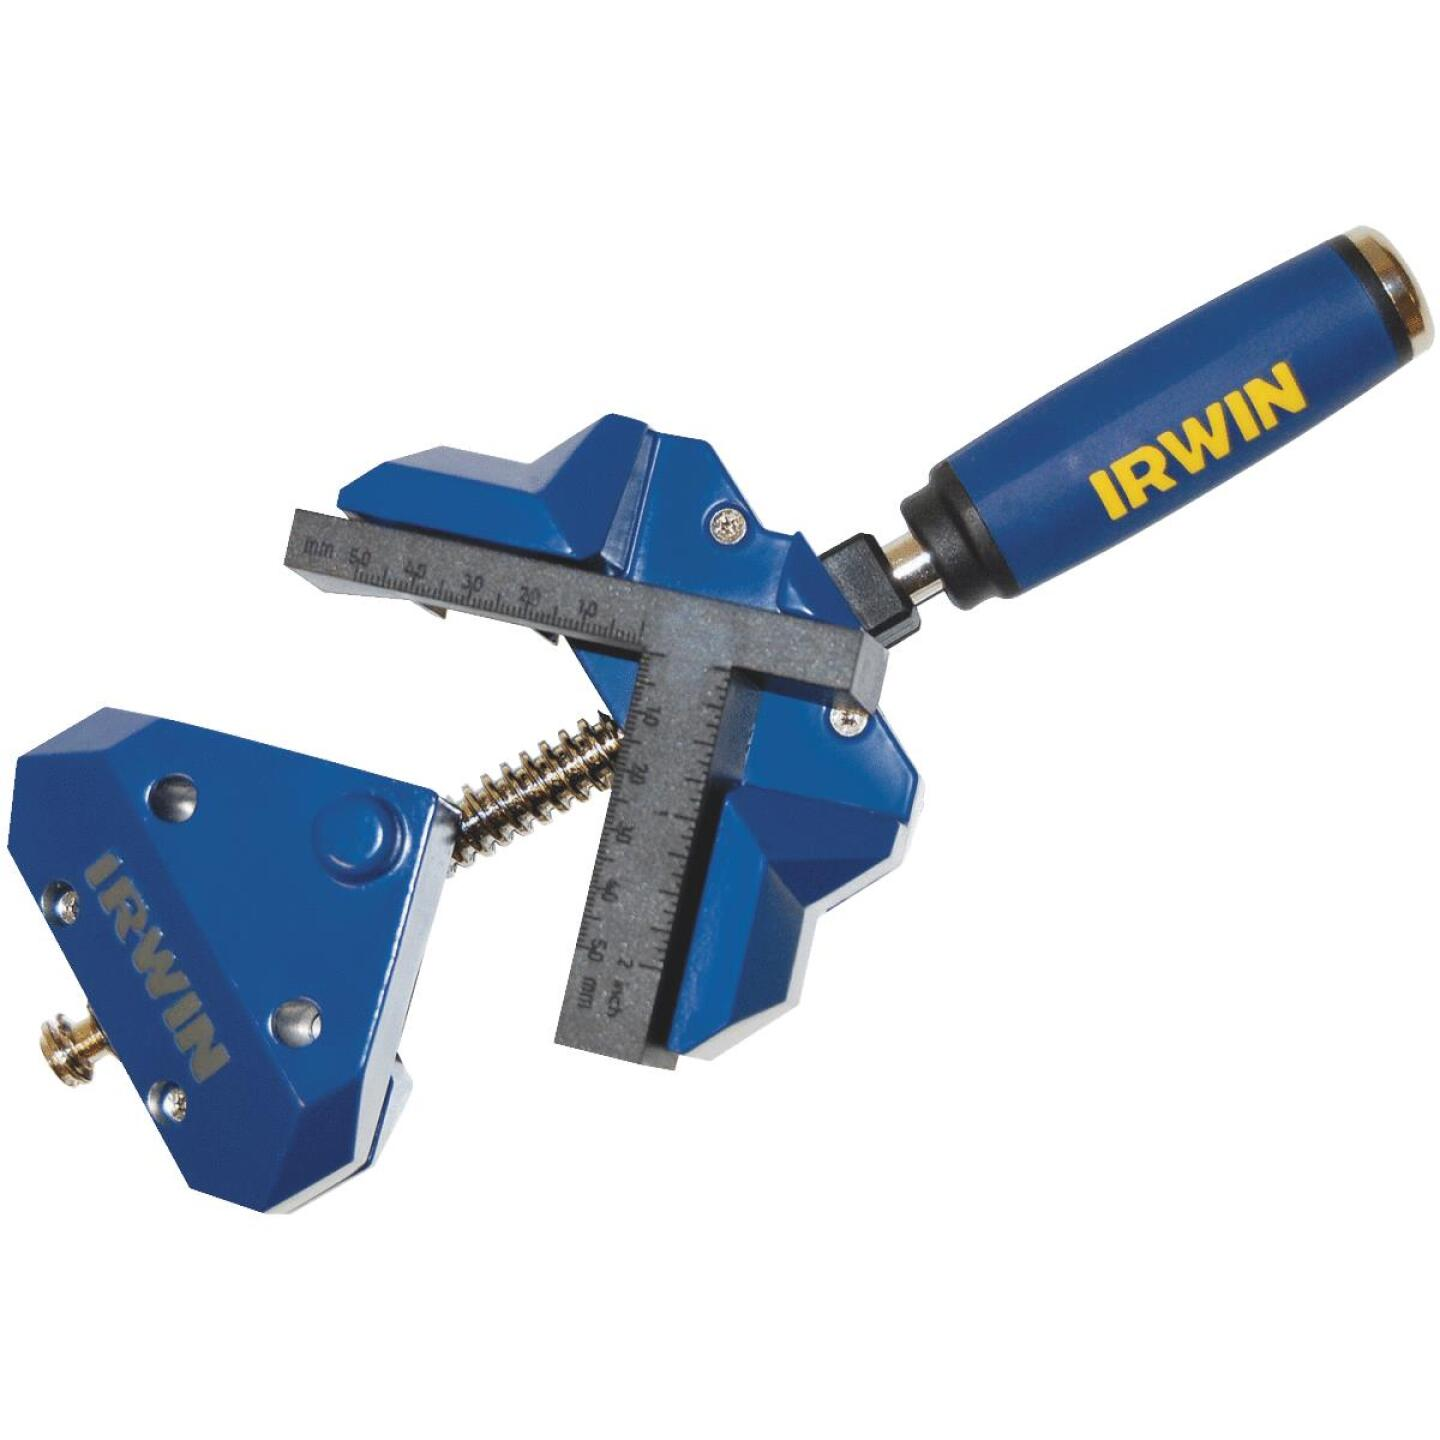 Irwin 3 In. 90 Degree Angle Clamp Image 1